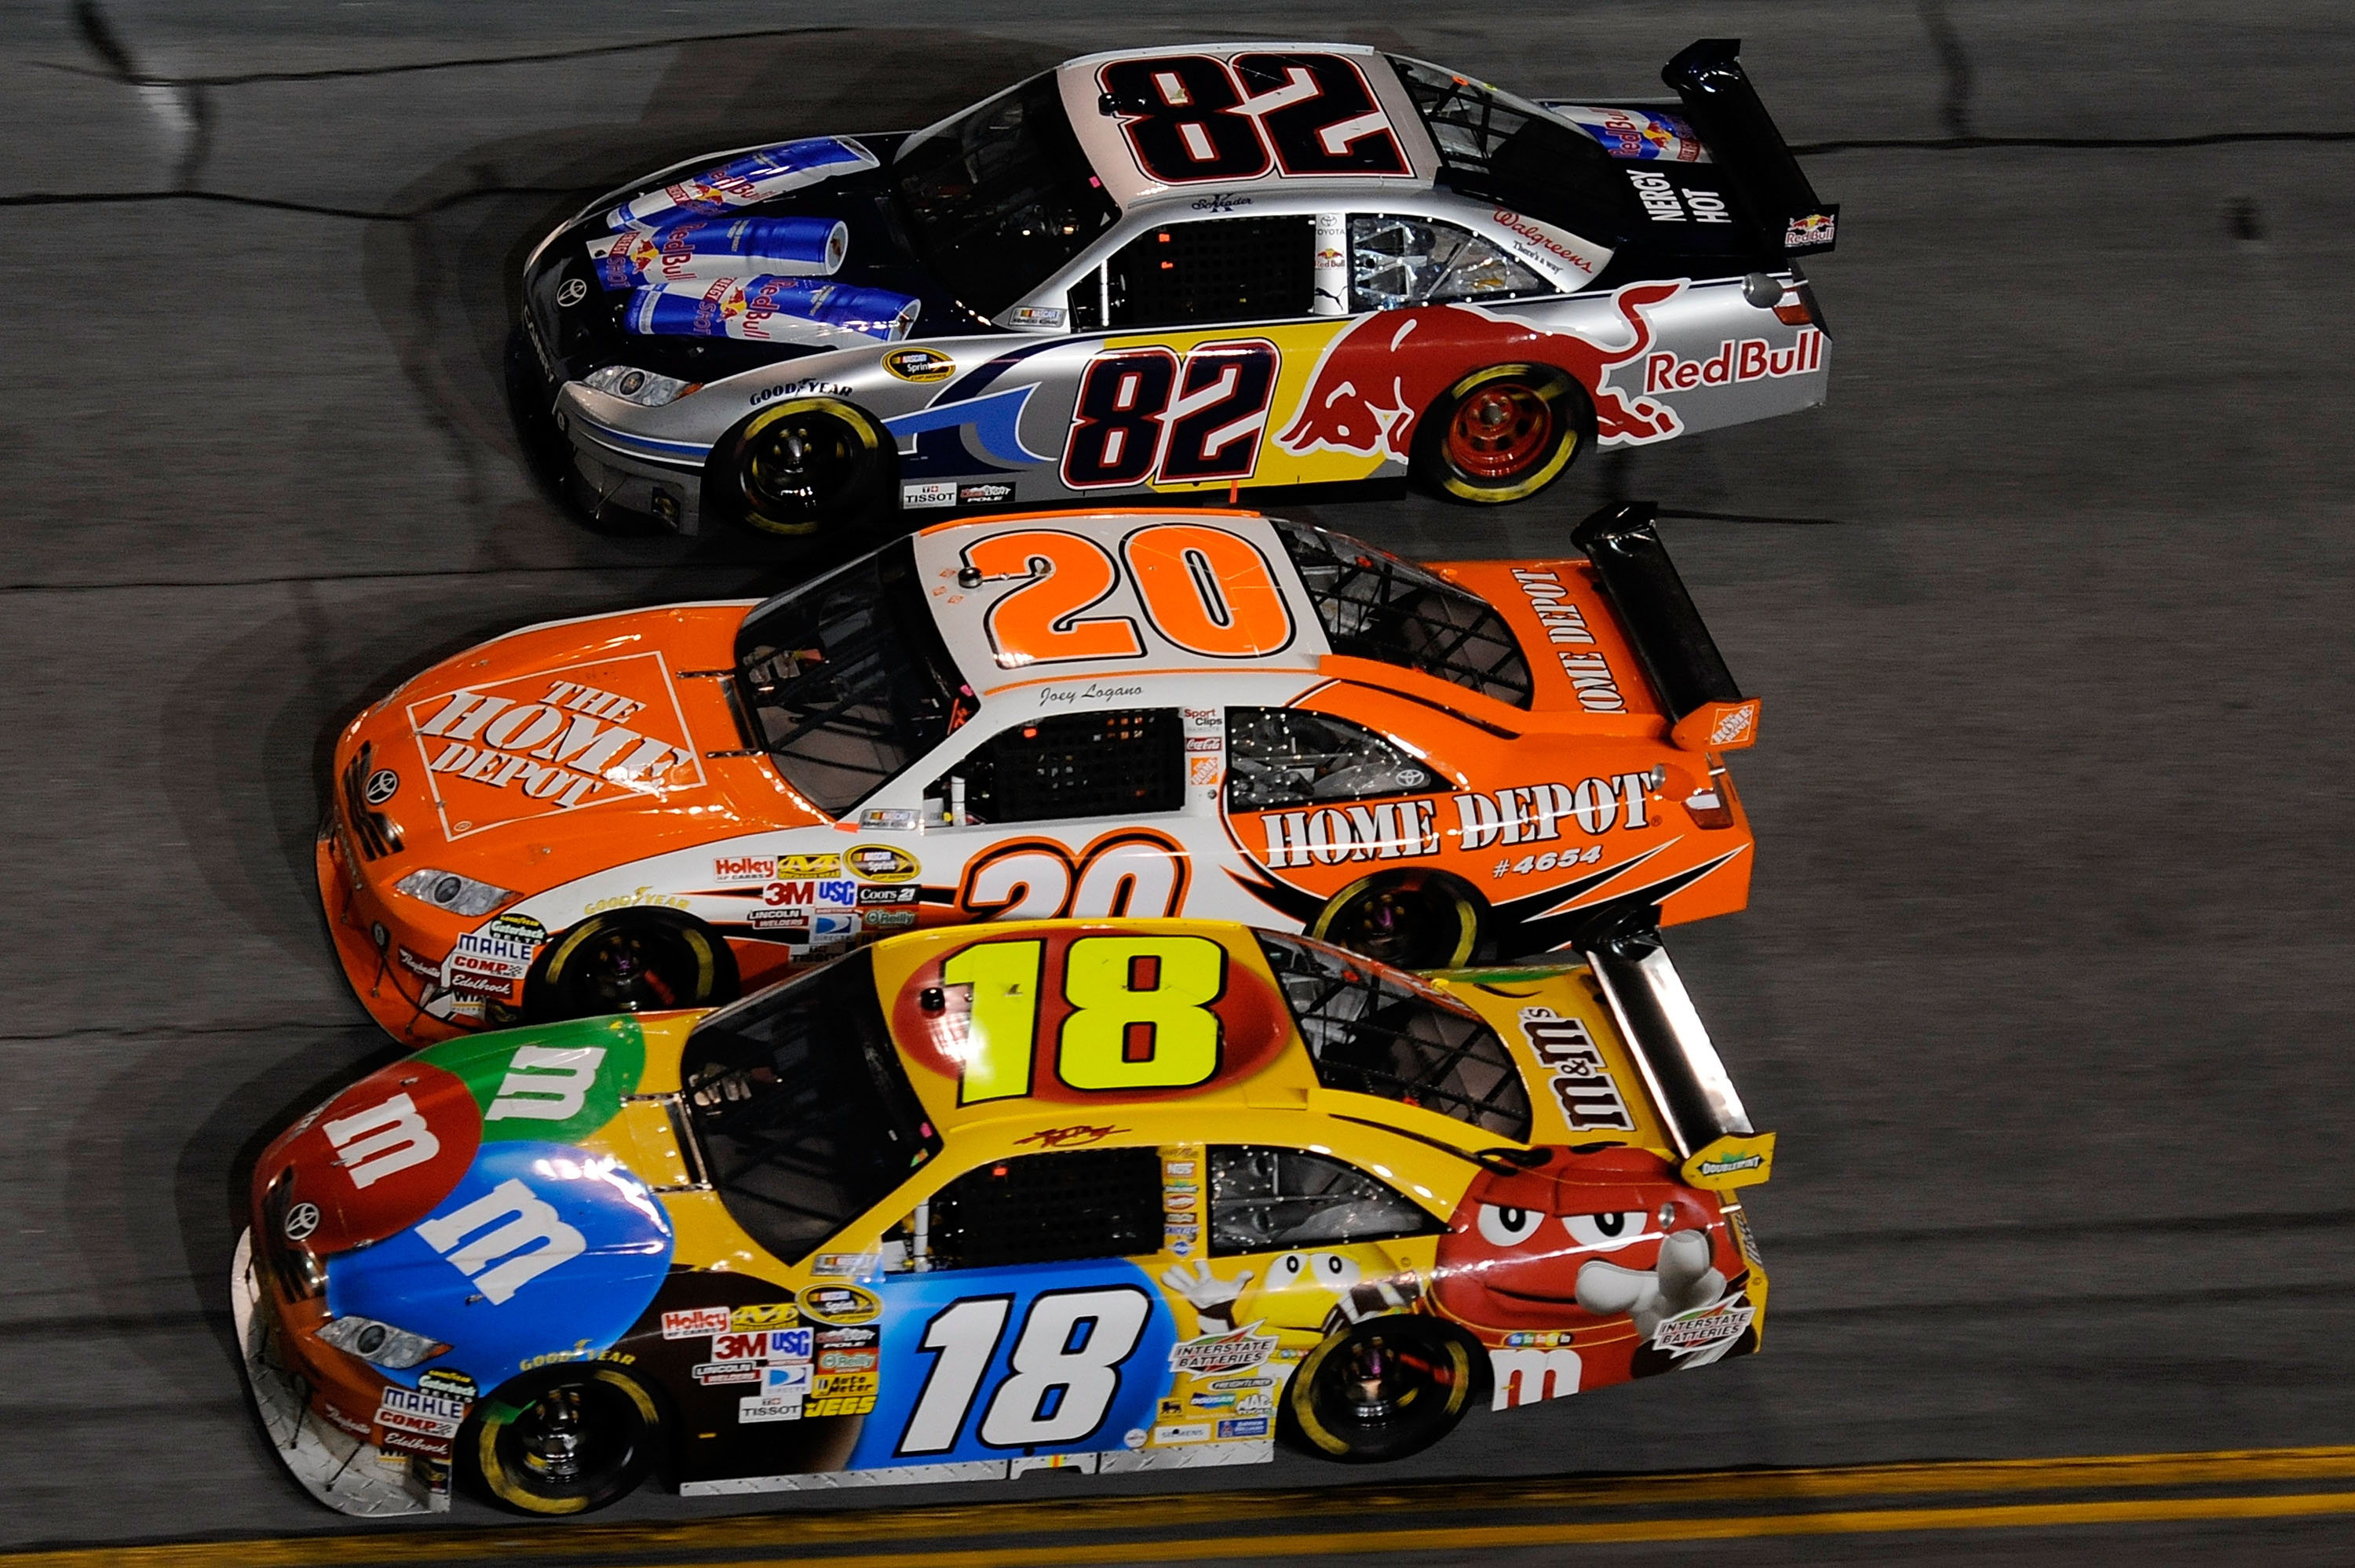 Kyle Busch is never afraid to stick his car in precarious spots at Daytona.